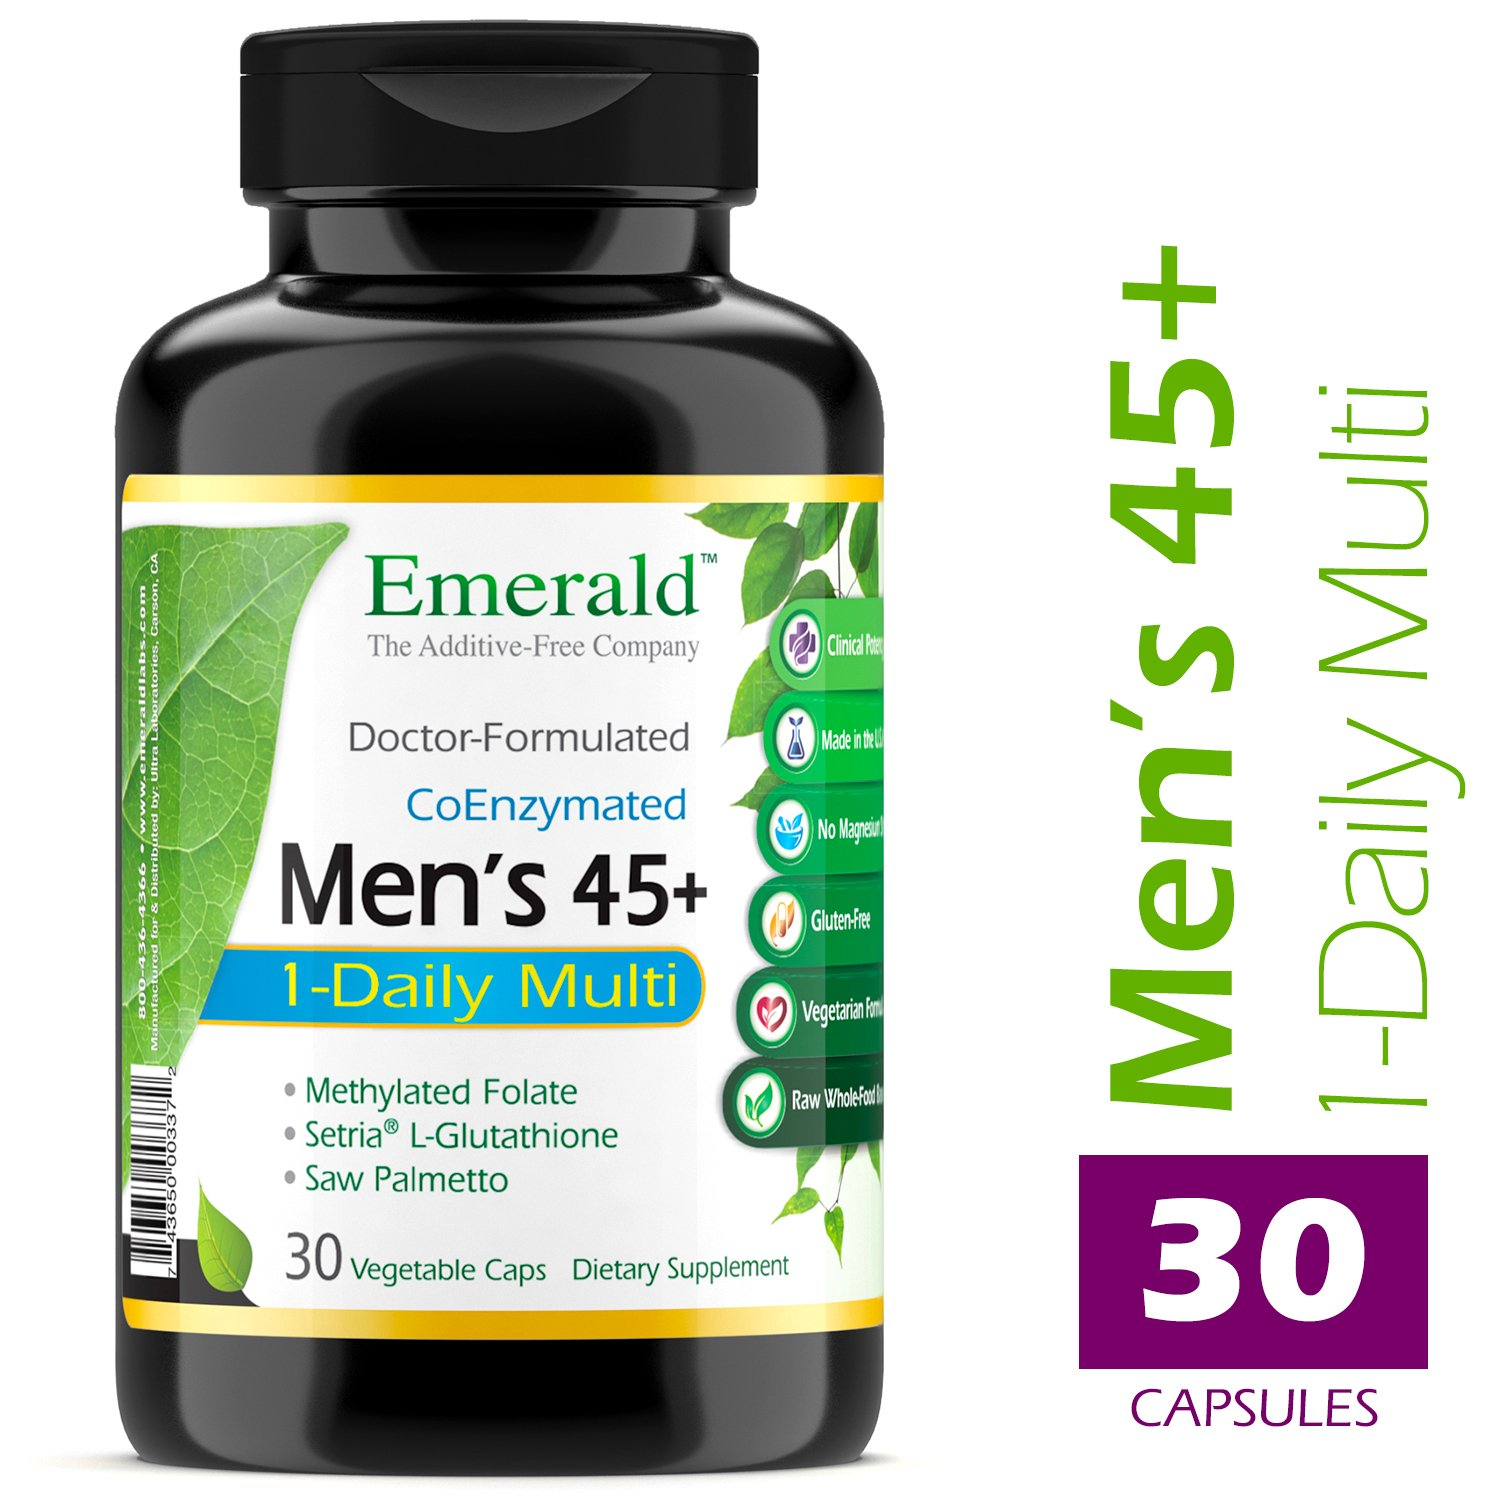 Men s 45 1-Daily Multi – Multivitamin with CoQ10, Saw Palmetto Extra Lycopene – Supports Heart Health, Energy Boost, Immune System, Strong Bones – Emerald Laboratories – 30 Vegetable Capsules